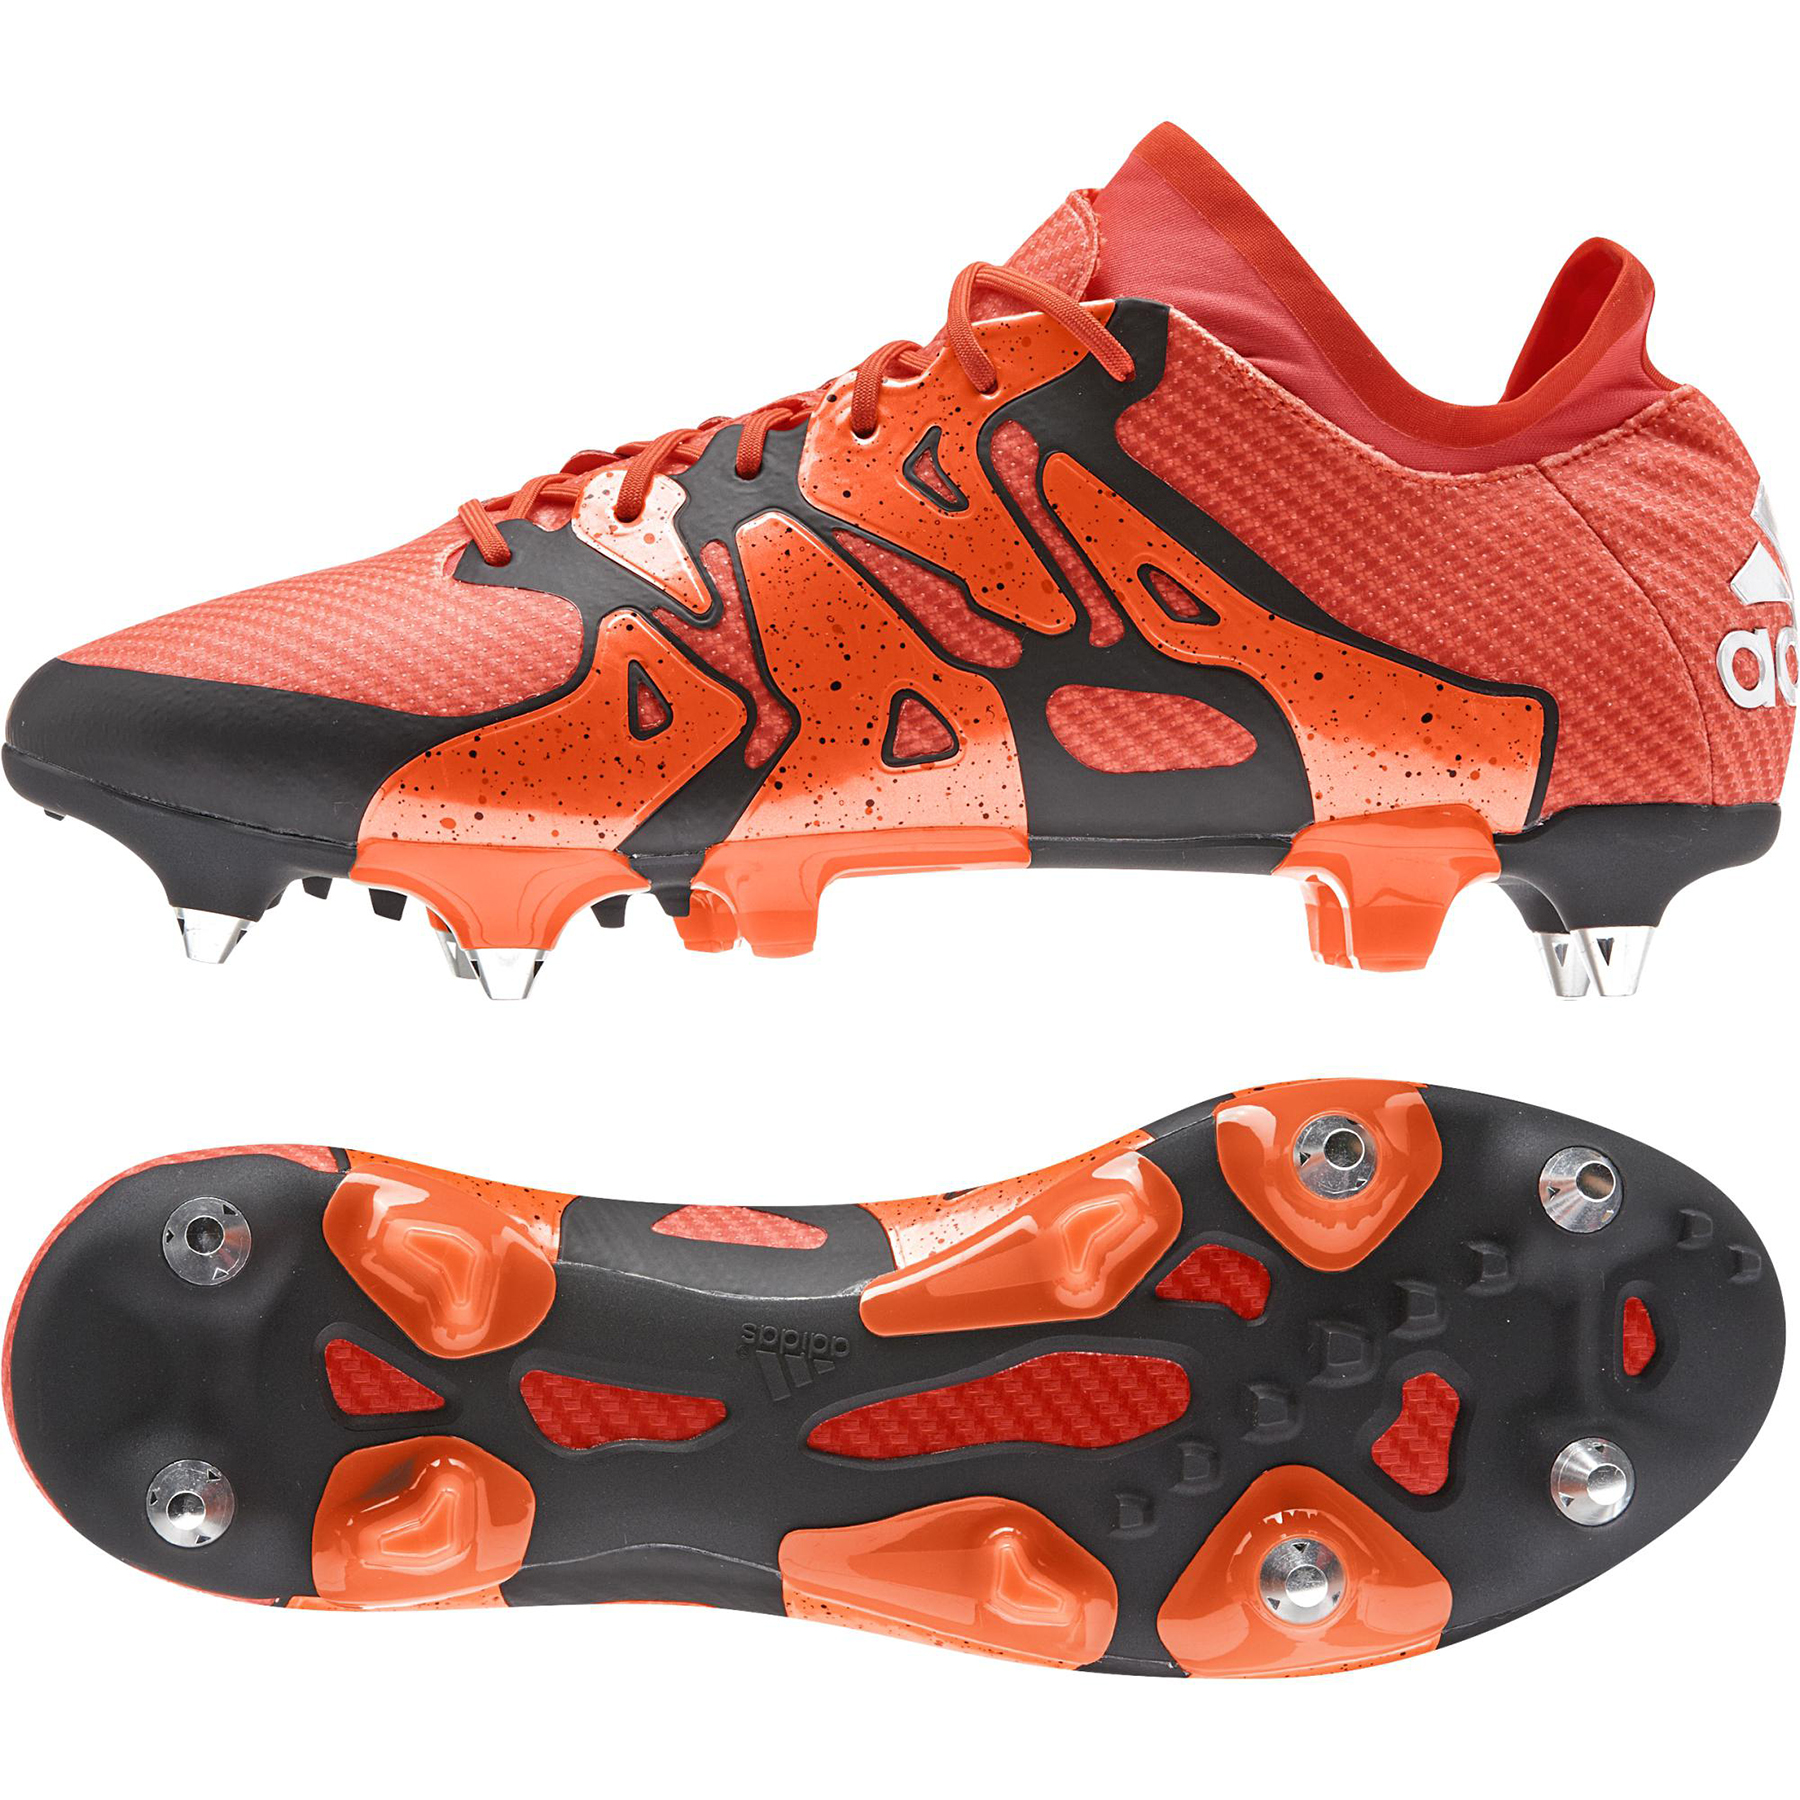 adidas X 15.1 Soft Ground Football Boots Orange